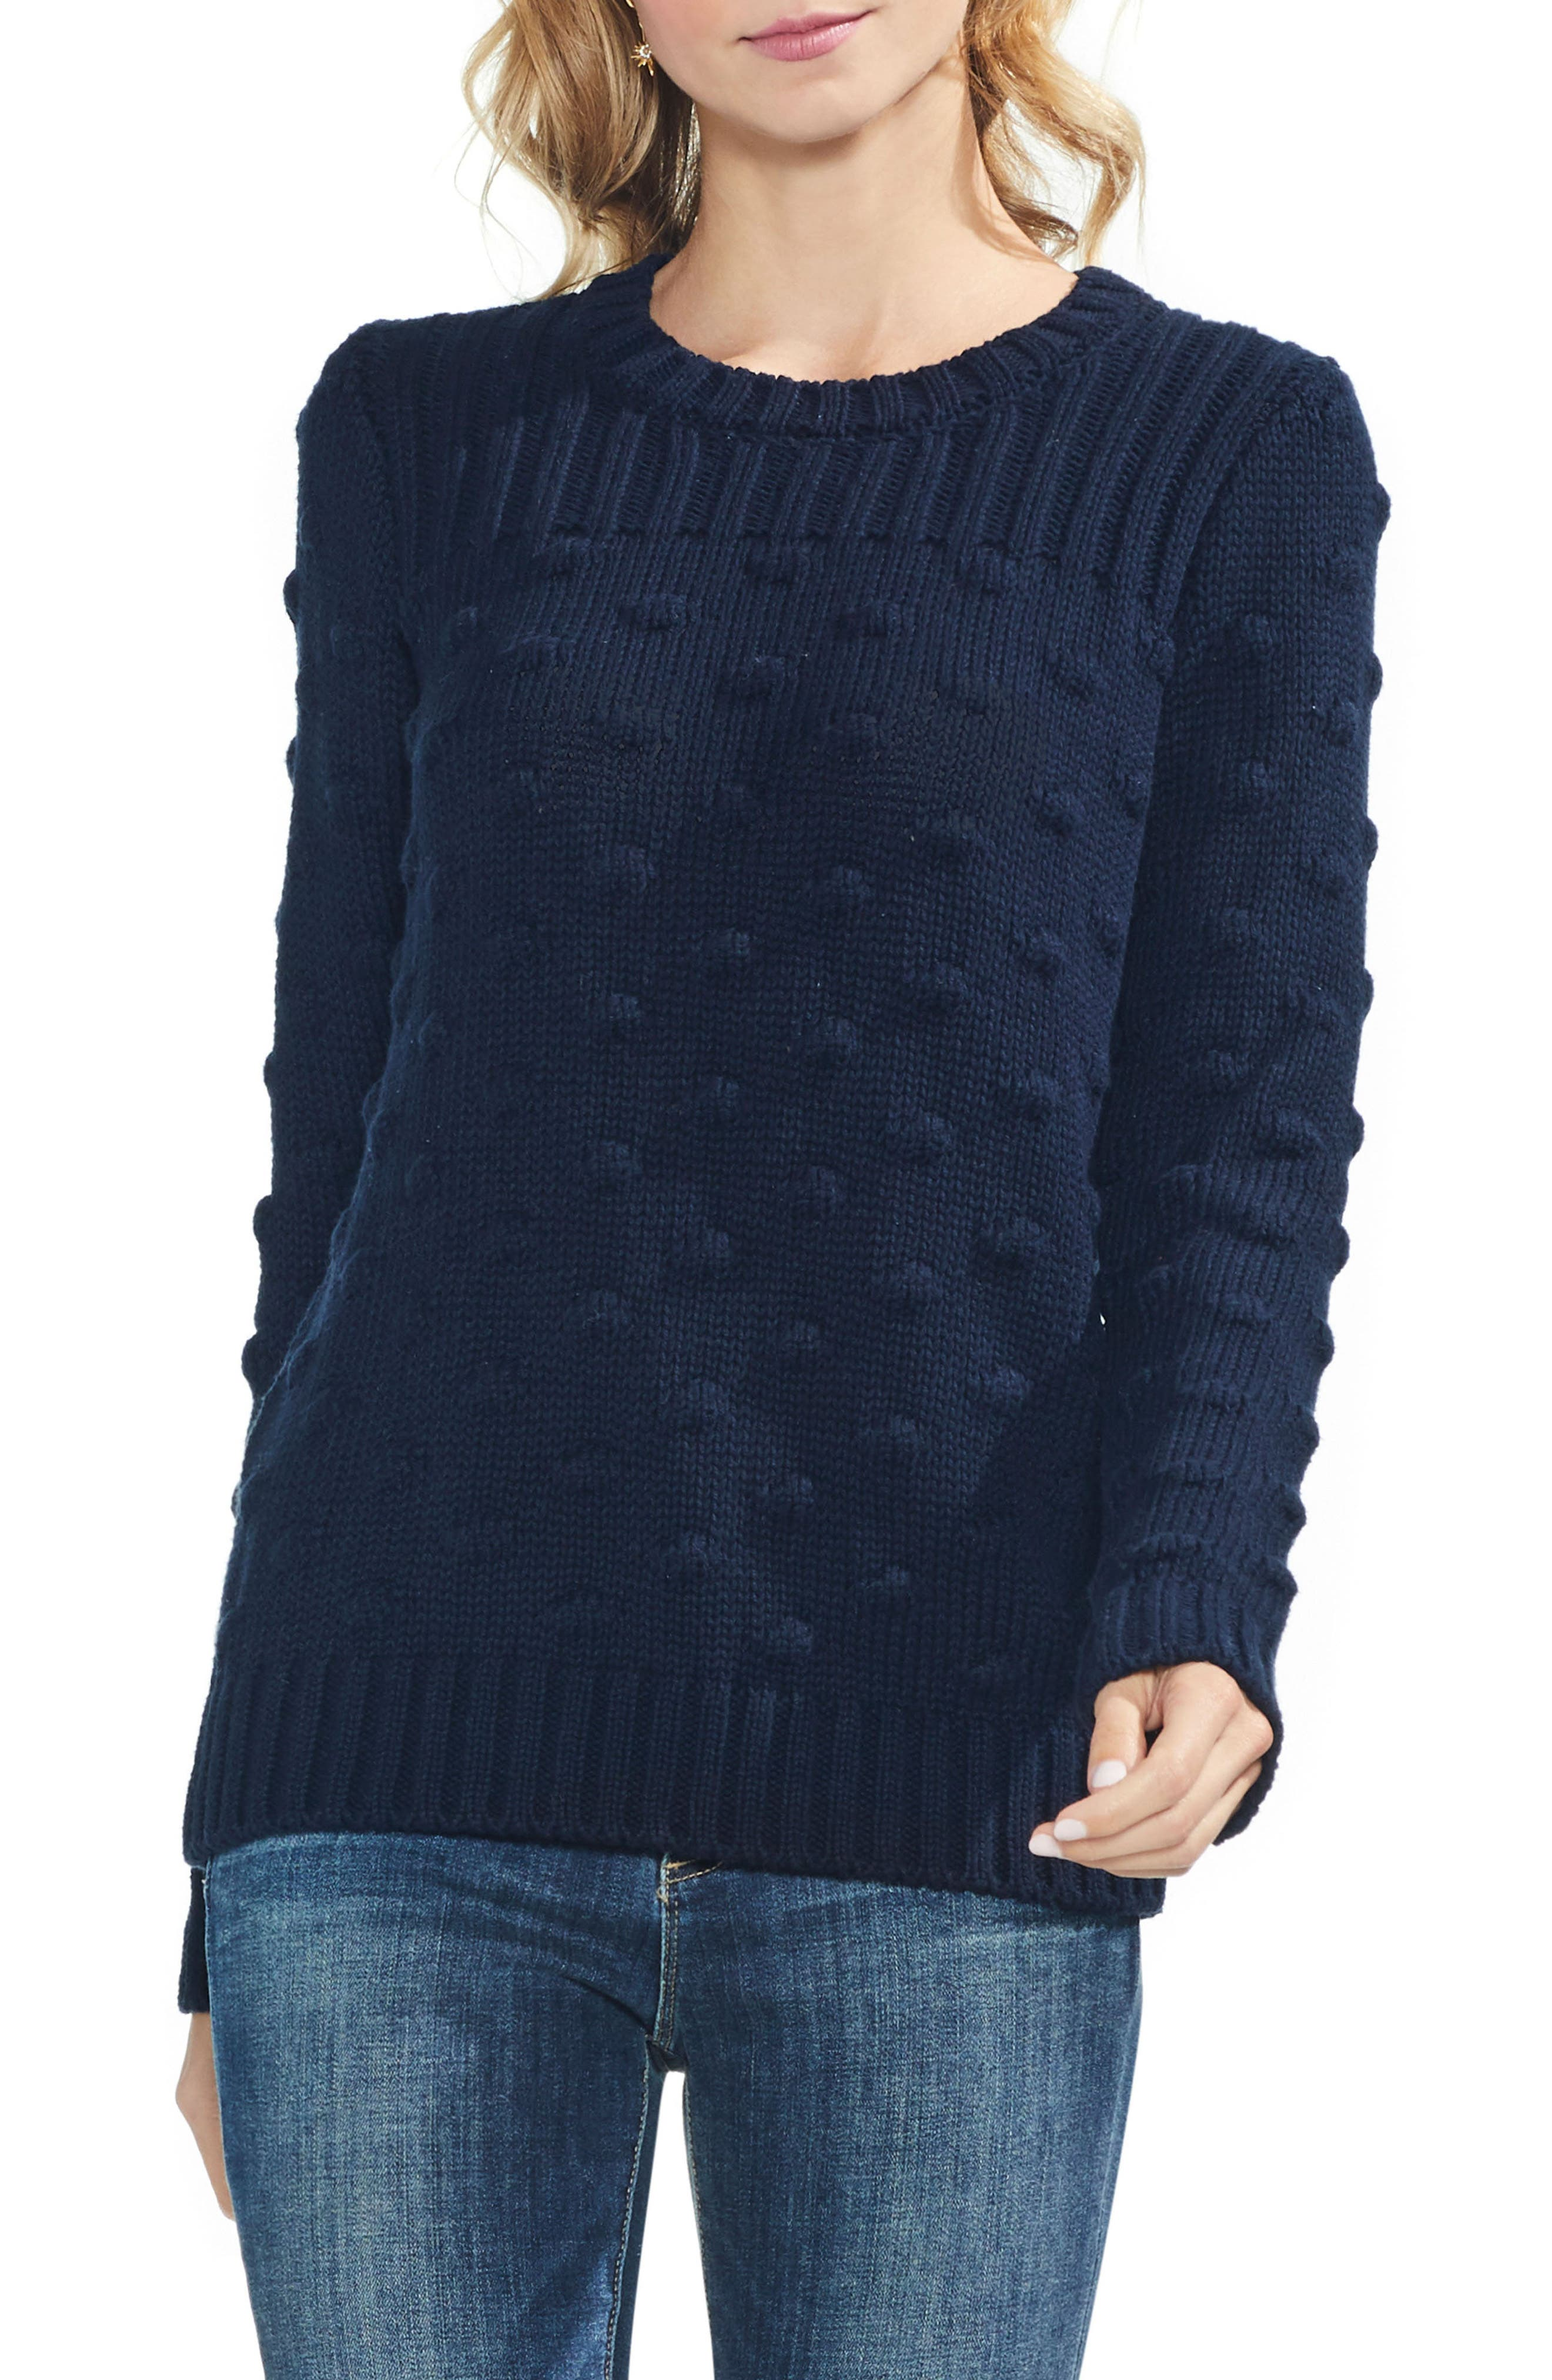 Vince Camto Popcorn Stitch Cotton Sweater,                             Main thumbnail 1, color,                             CLASSIC NAVY